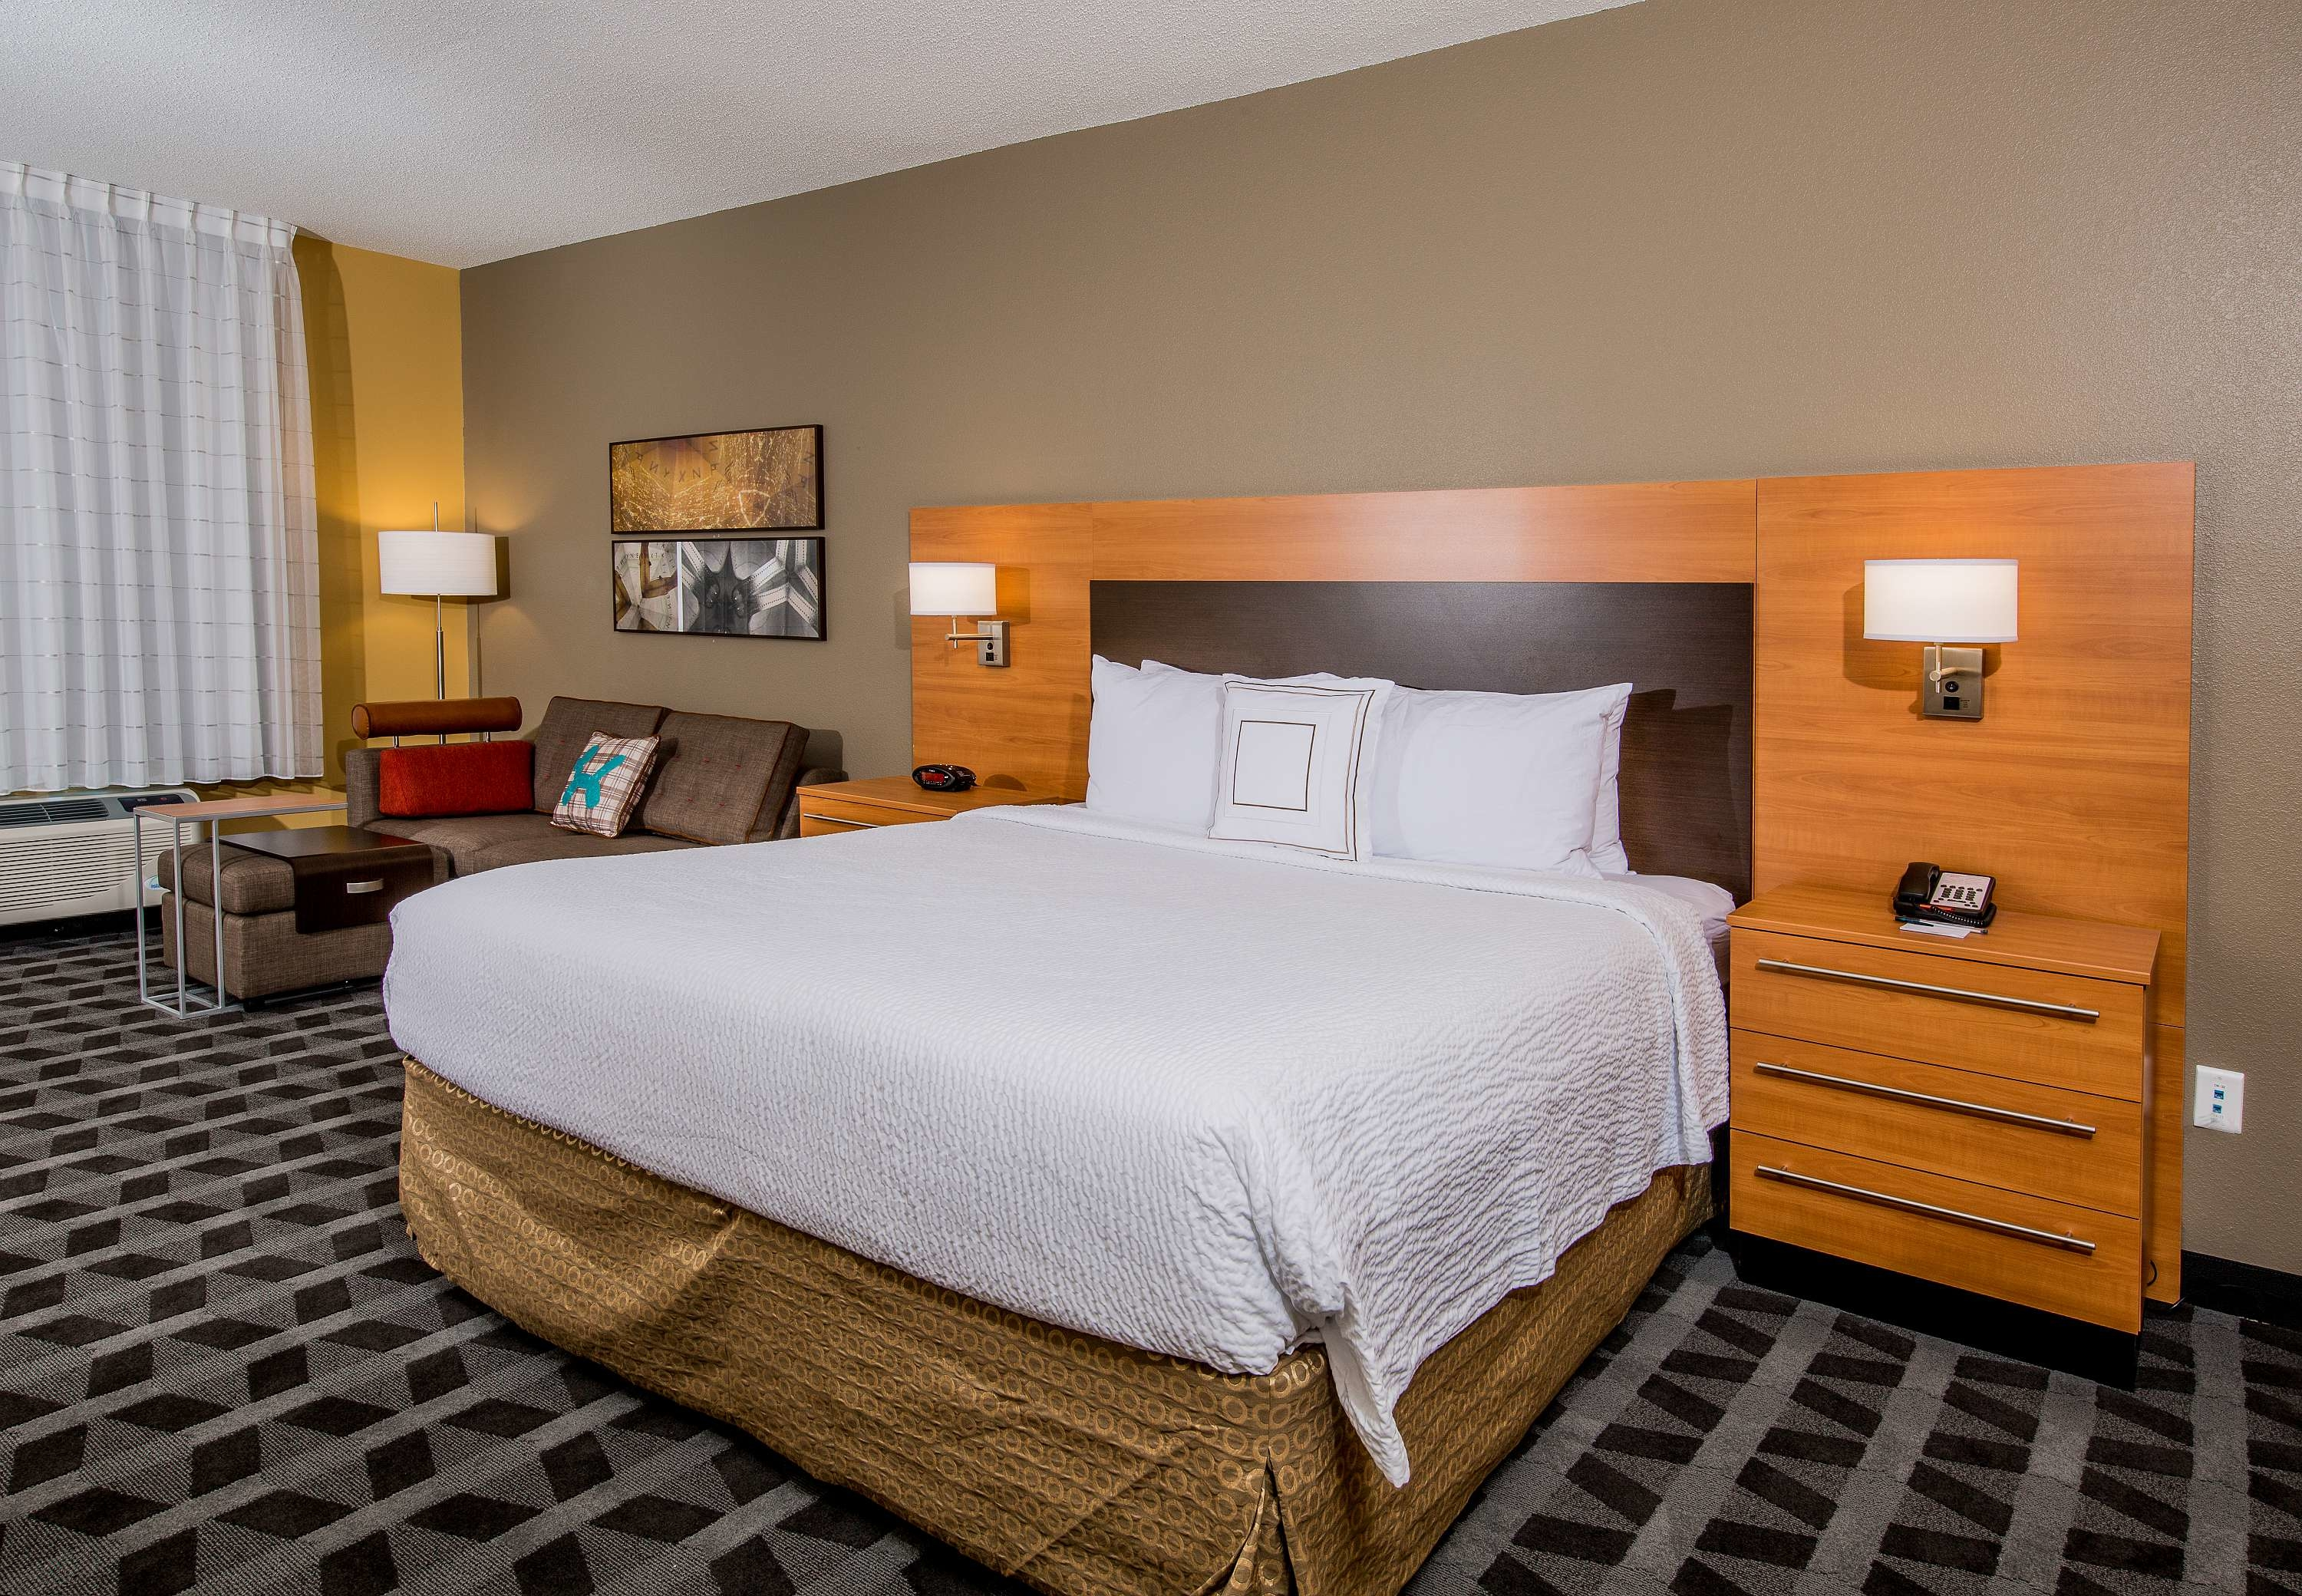 TownePlace Suites by Marriott Florence image 9